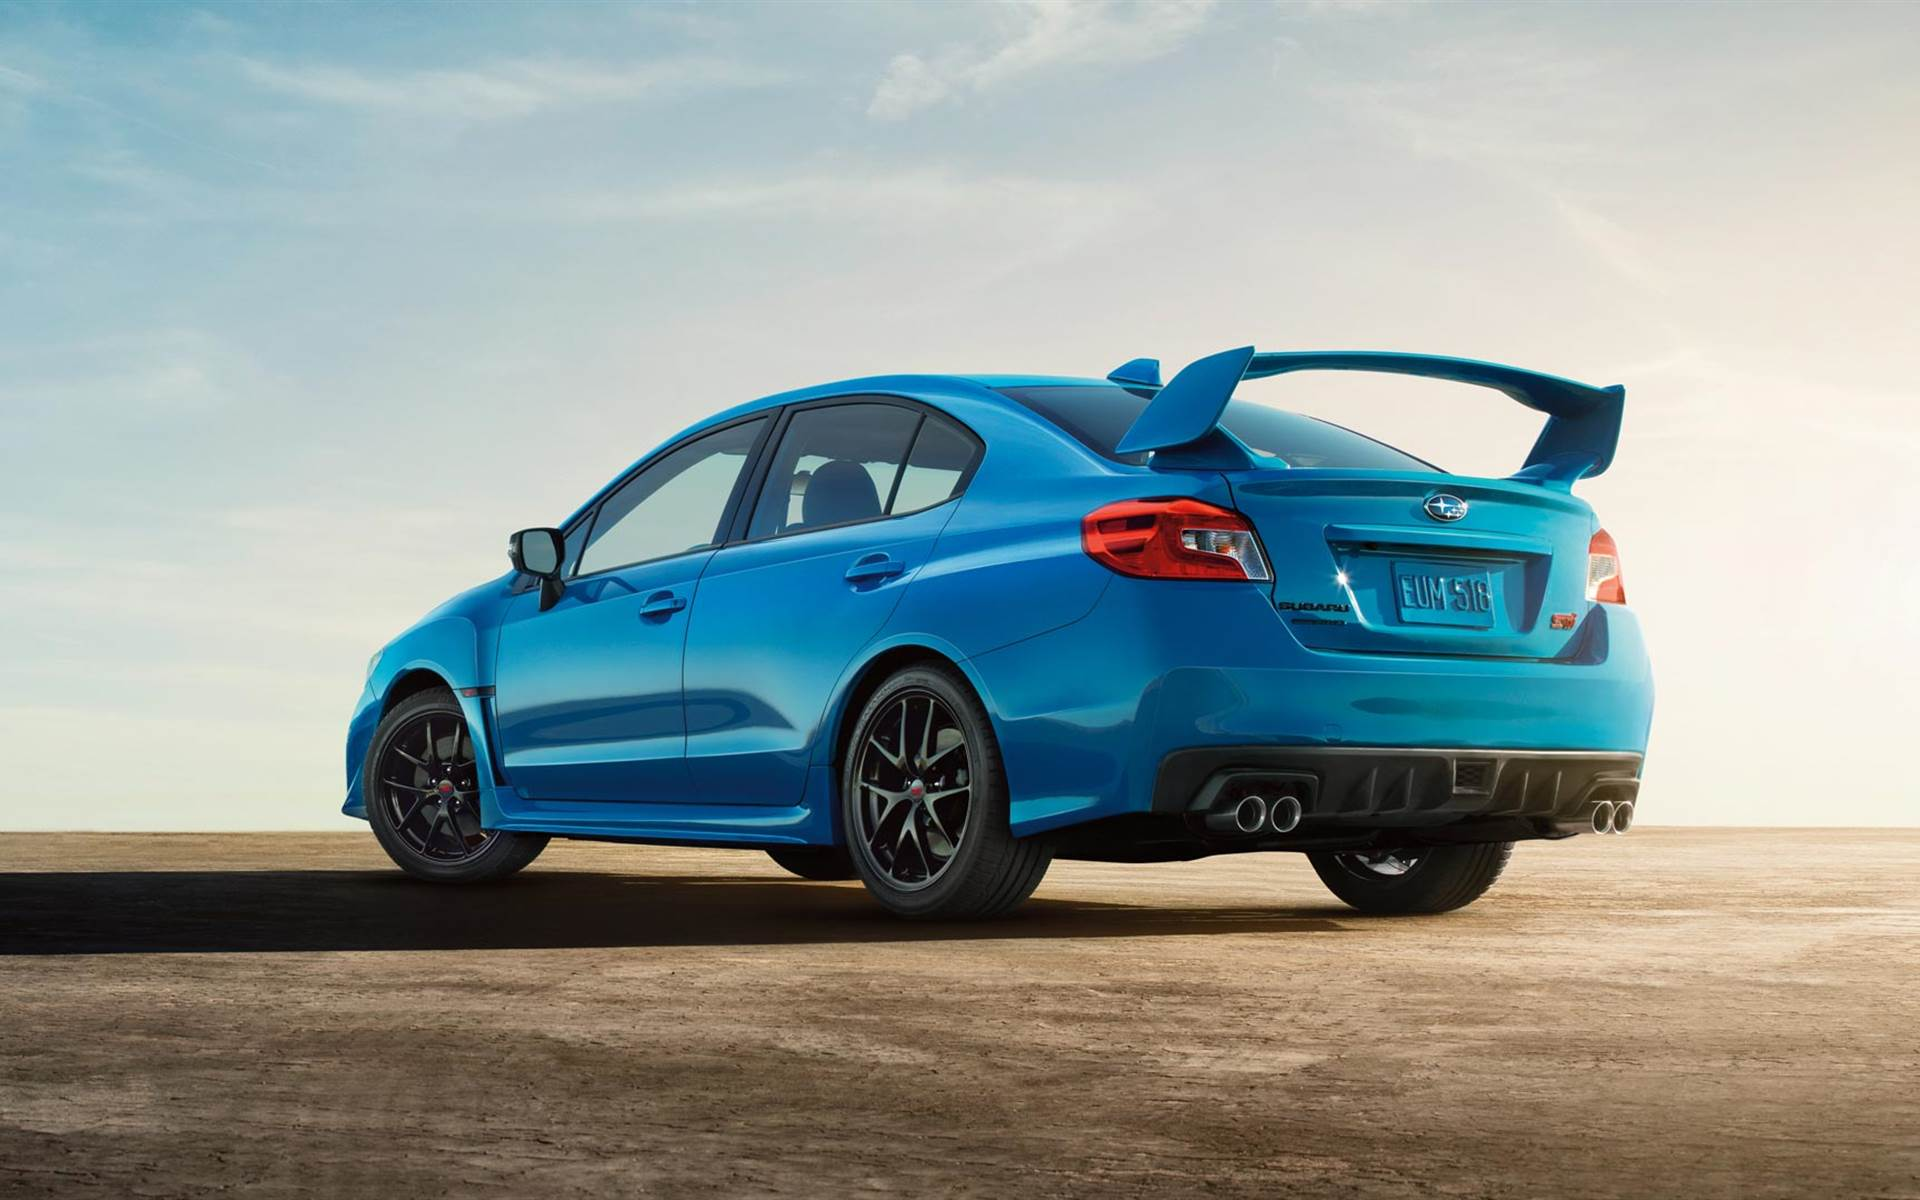 2016 Subaru WRX STI SeriesHyperBlue HD Wallpapers 2 Bycarinfocom 1920x1200